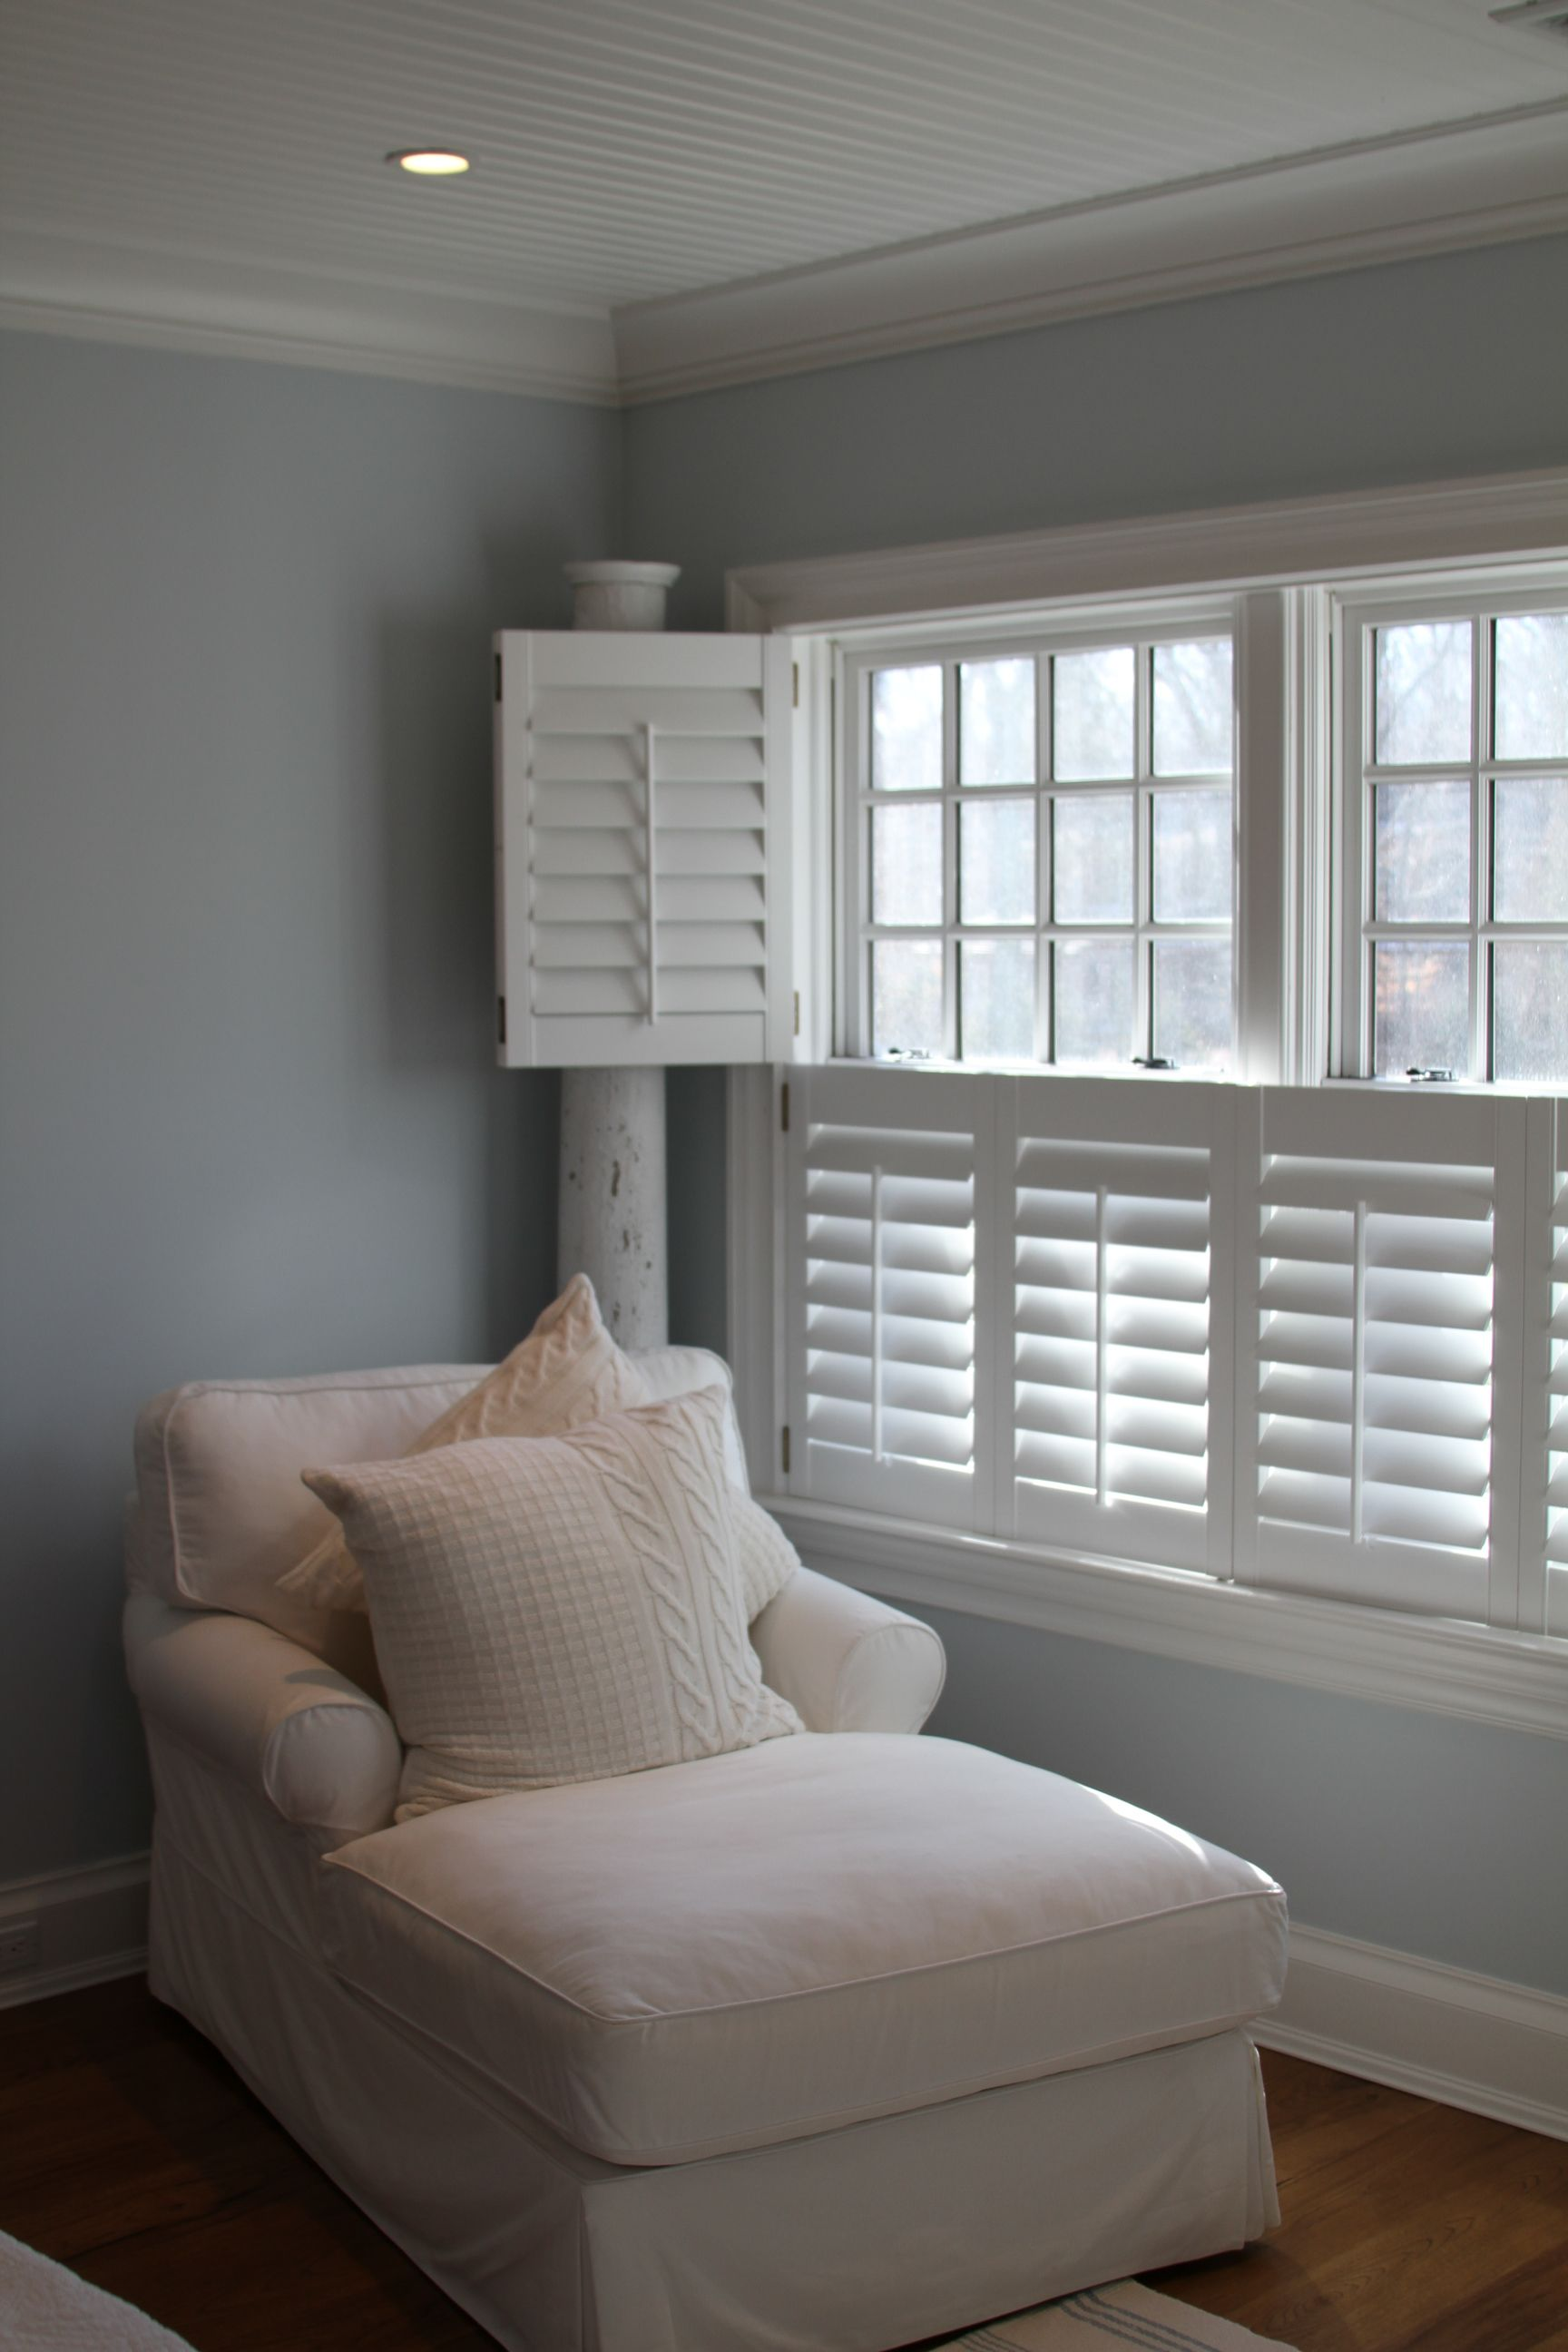 Windows With White Shutters In Bedroom Gray Bedroom Walls Blinds For Windows Living Rooms White Shutters